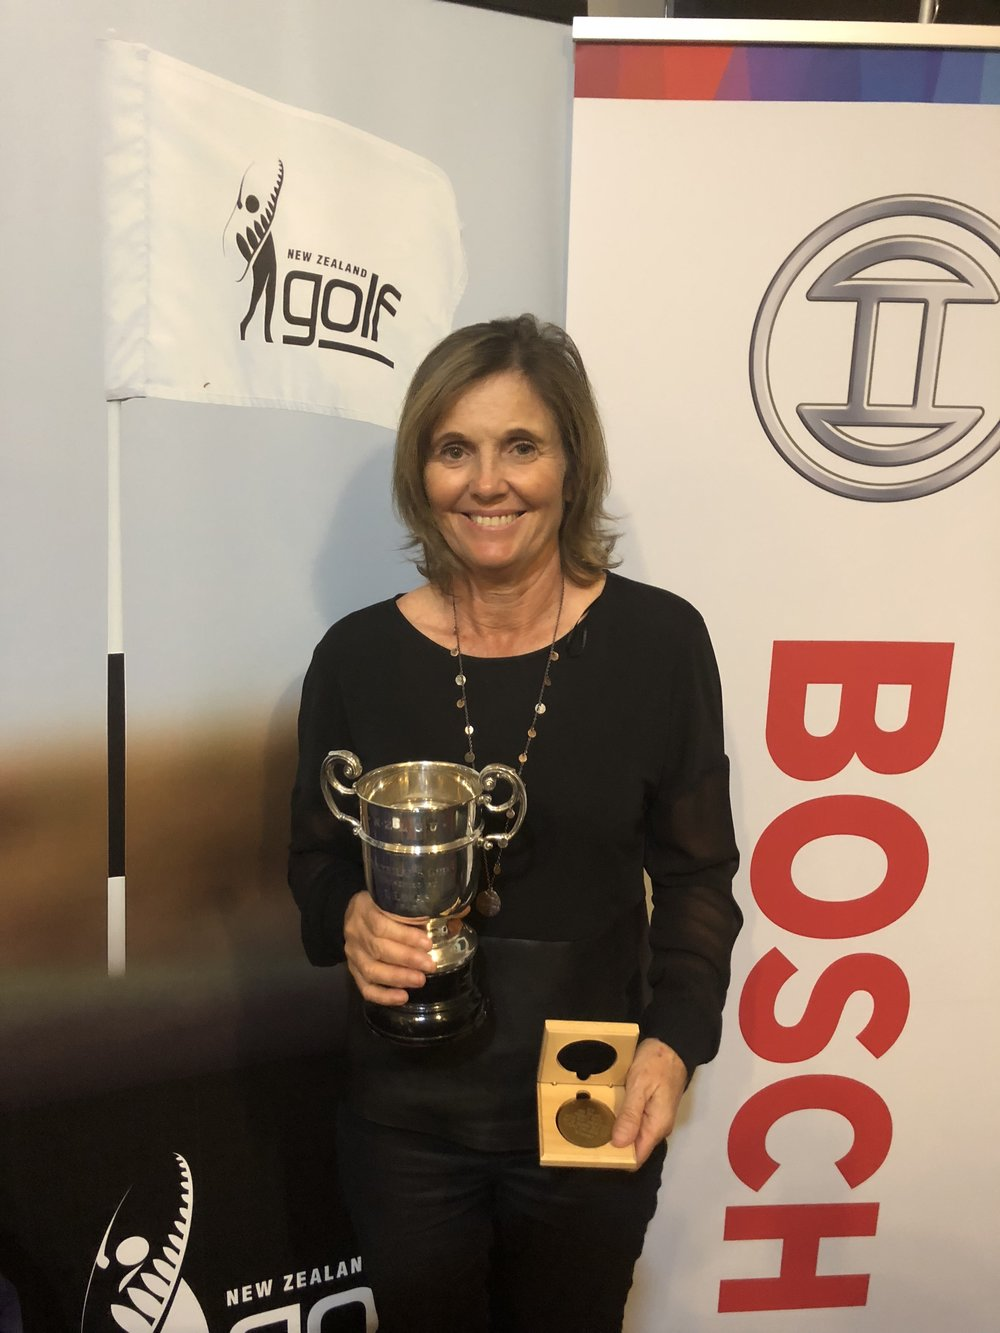 Sue Wooster, from Australia, winner of the New Zealand Women's Seniors tournament.